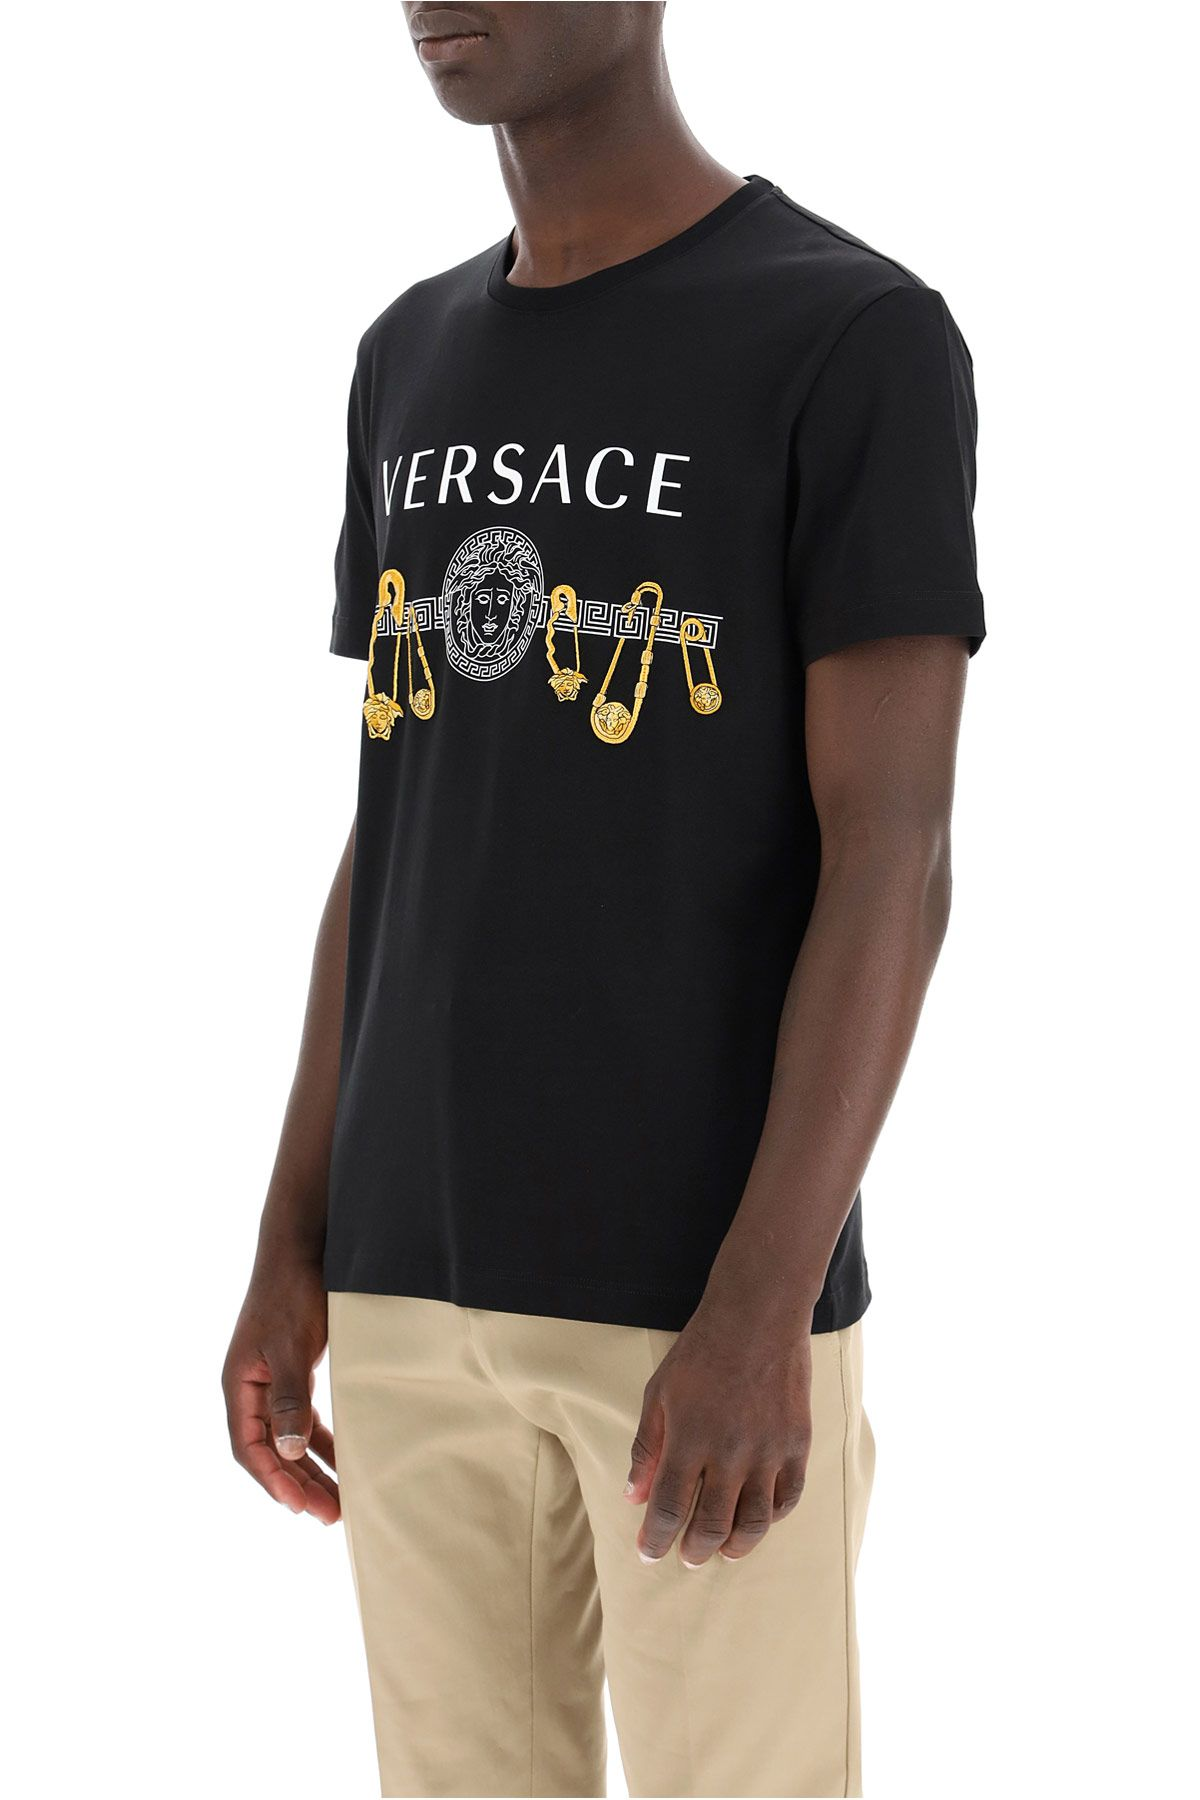 versace clothing men t-shirt with safety pin embroidery